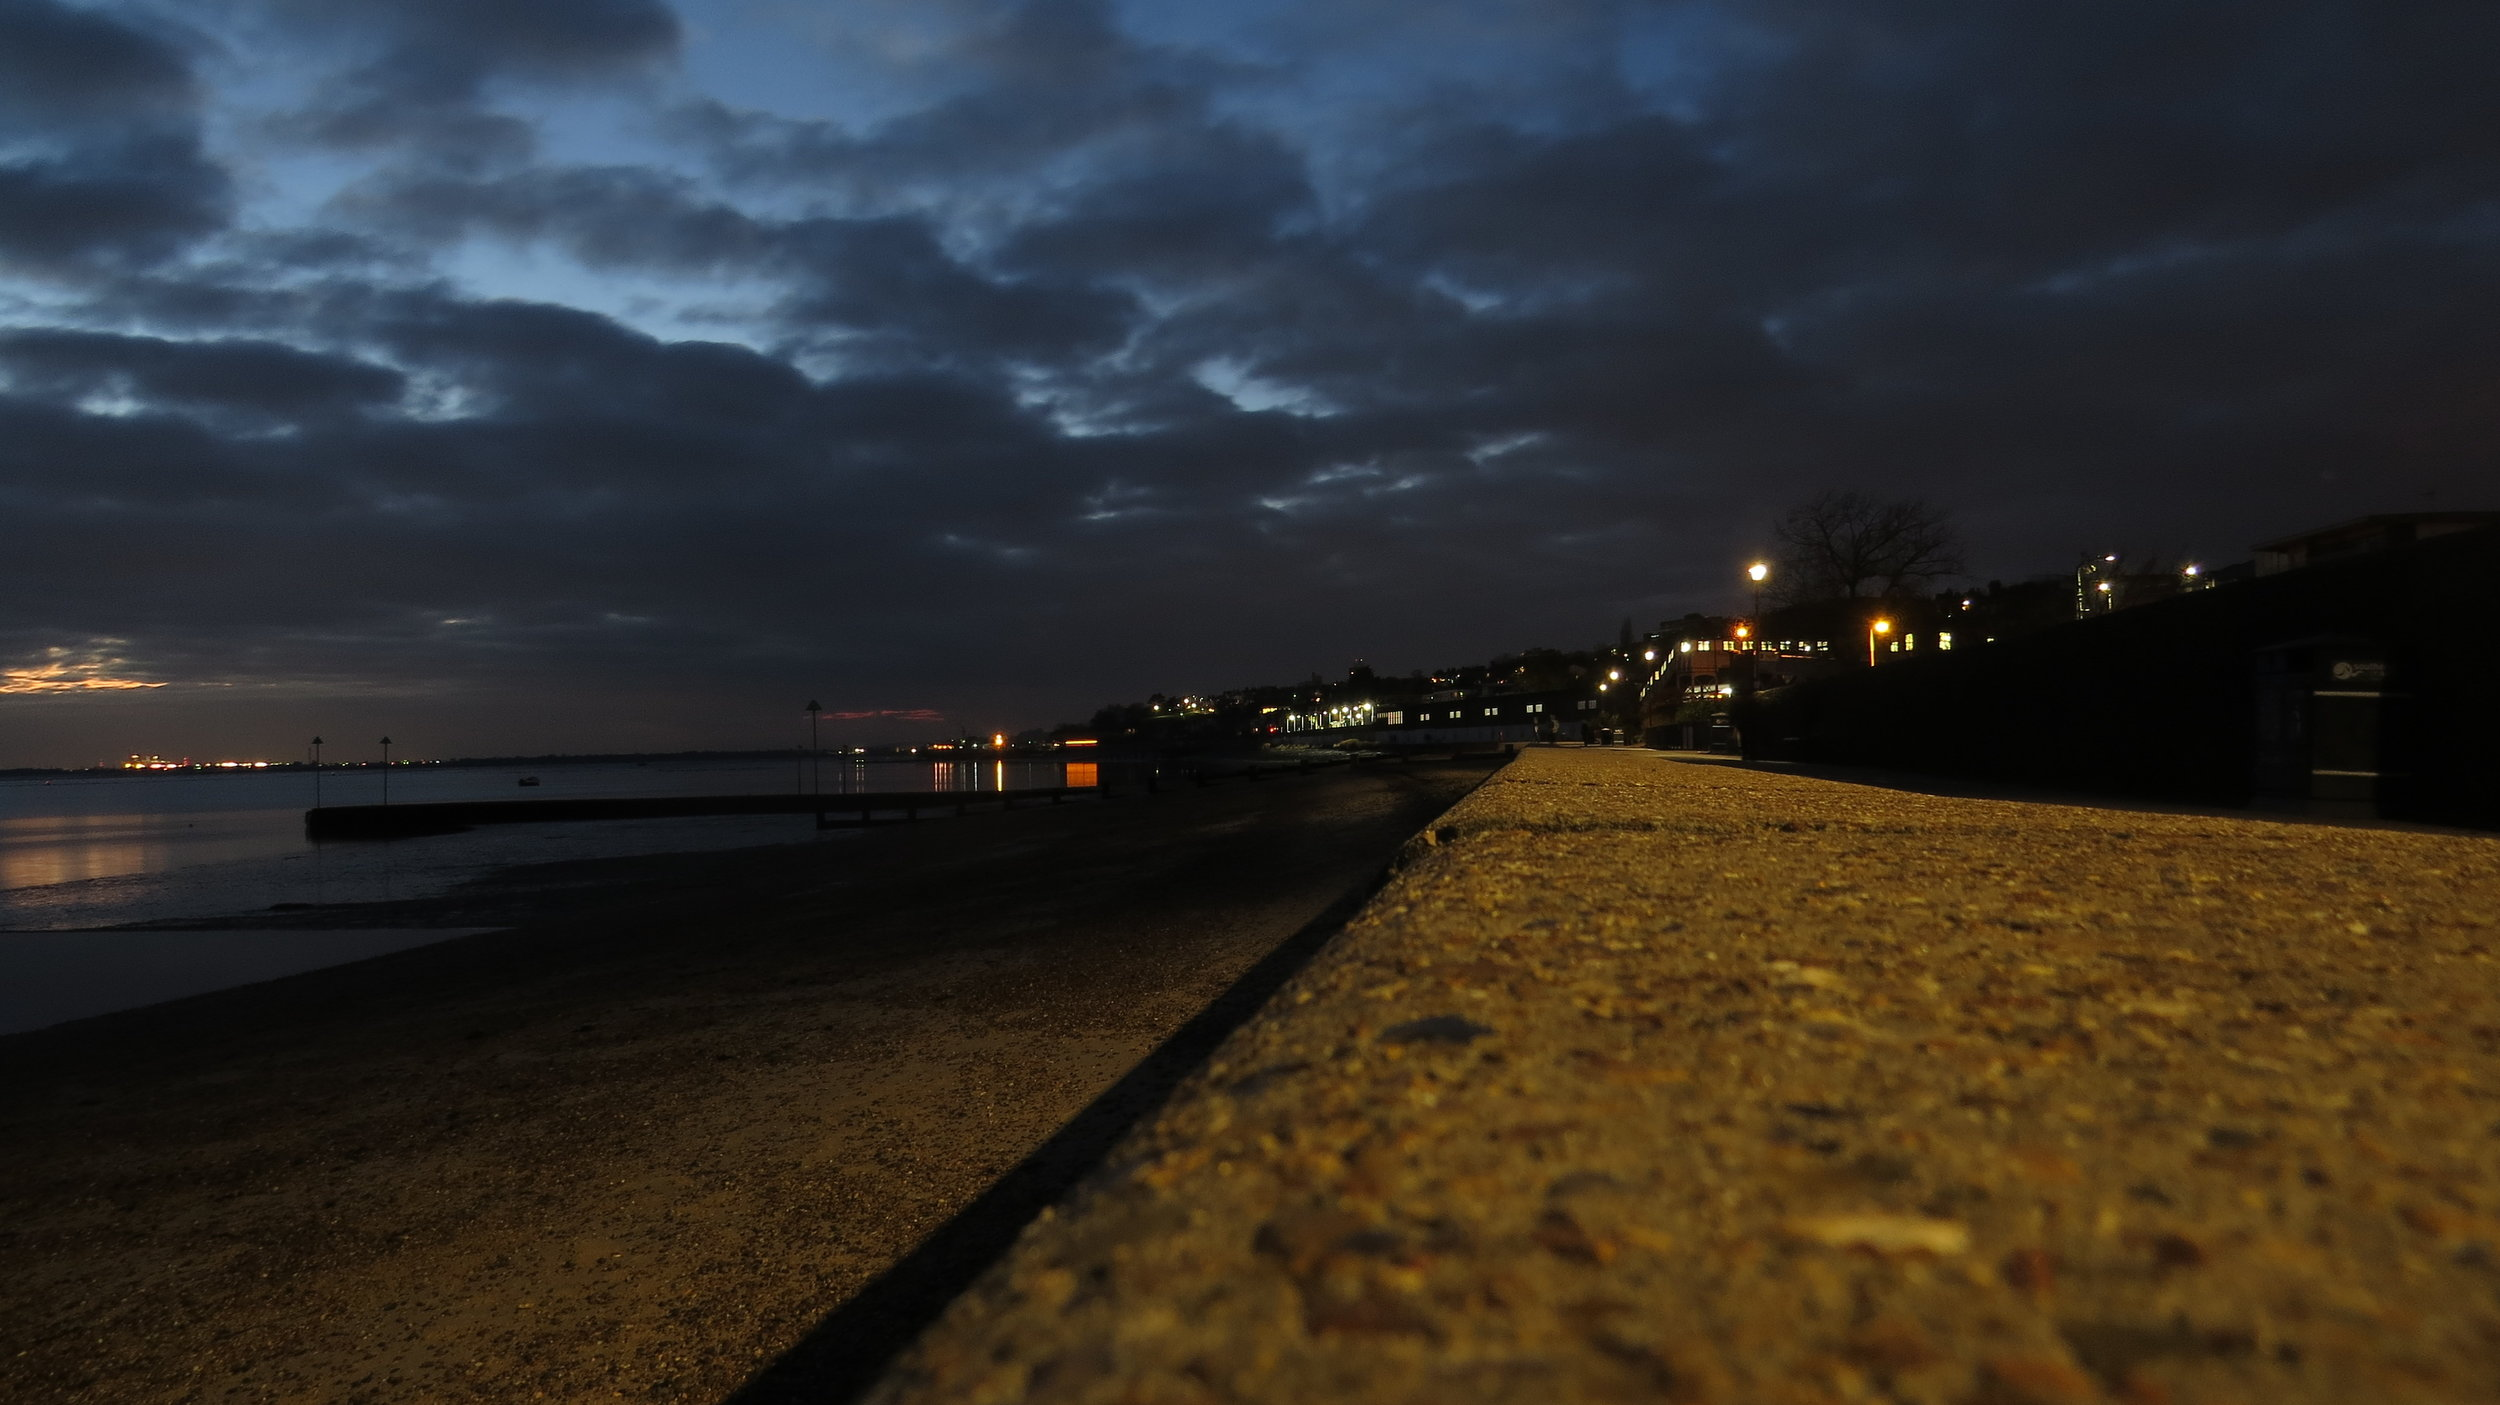 Arriving in Leigh-on-Sea in the Dark